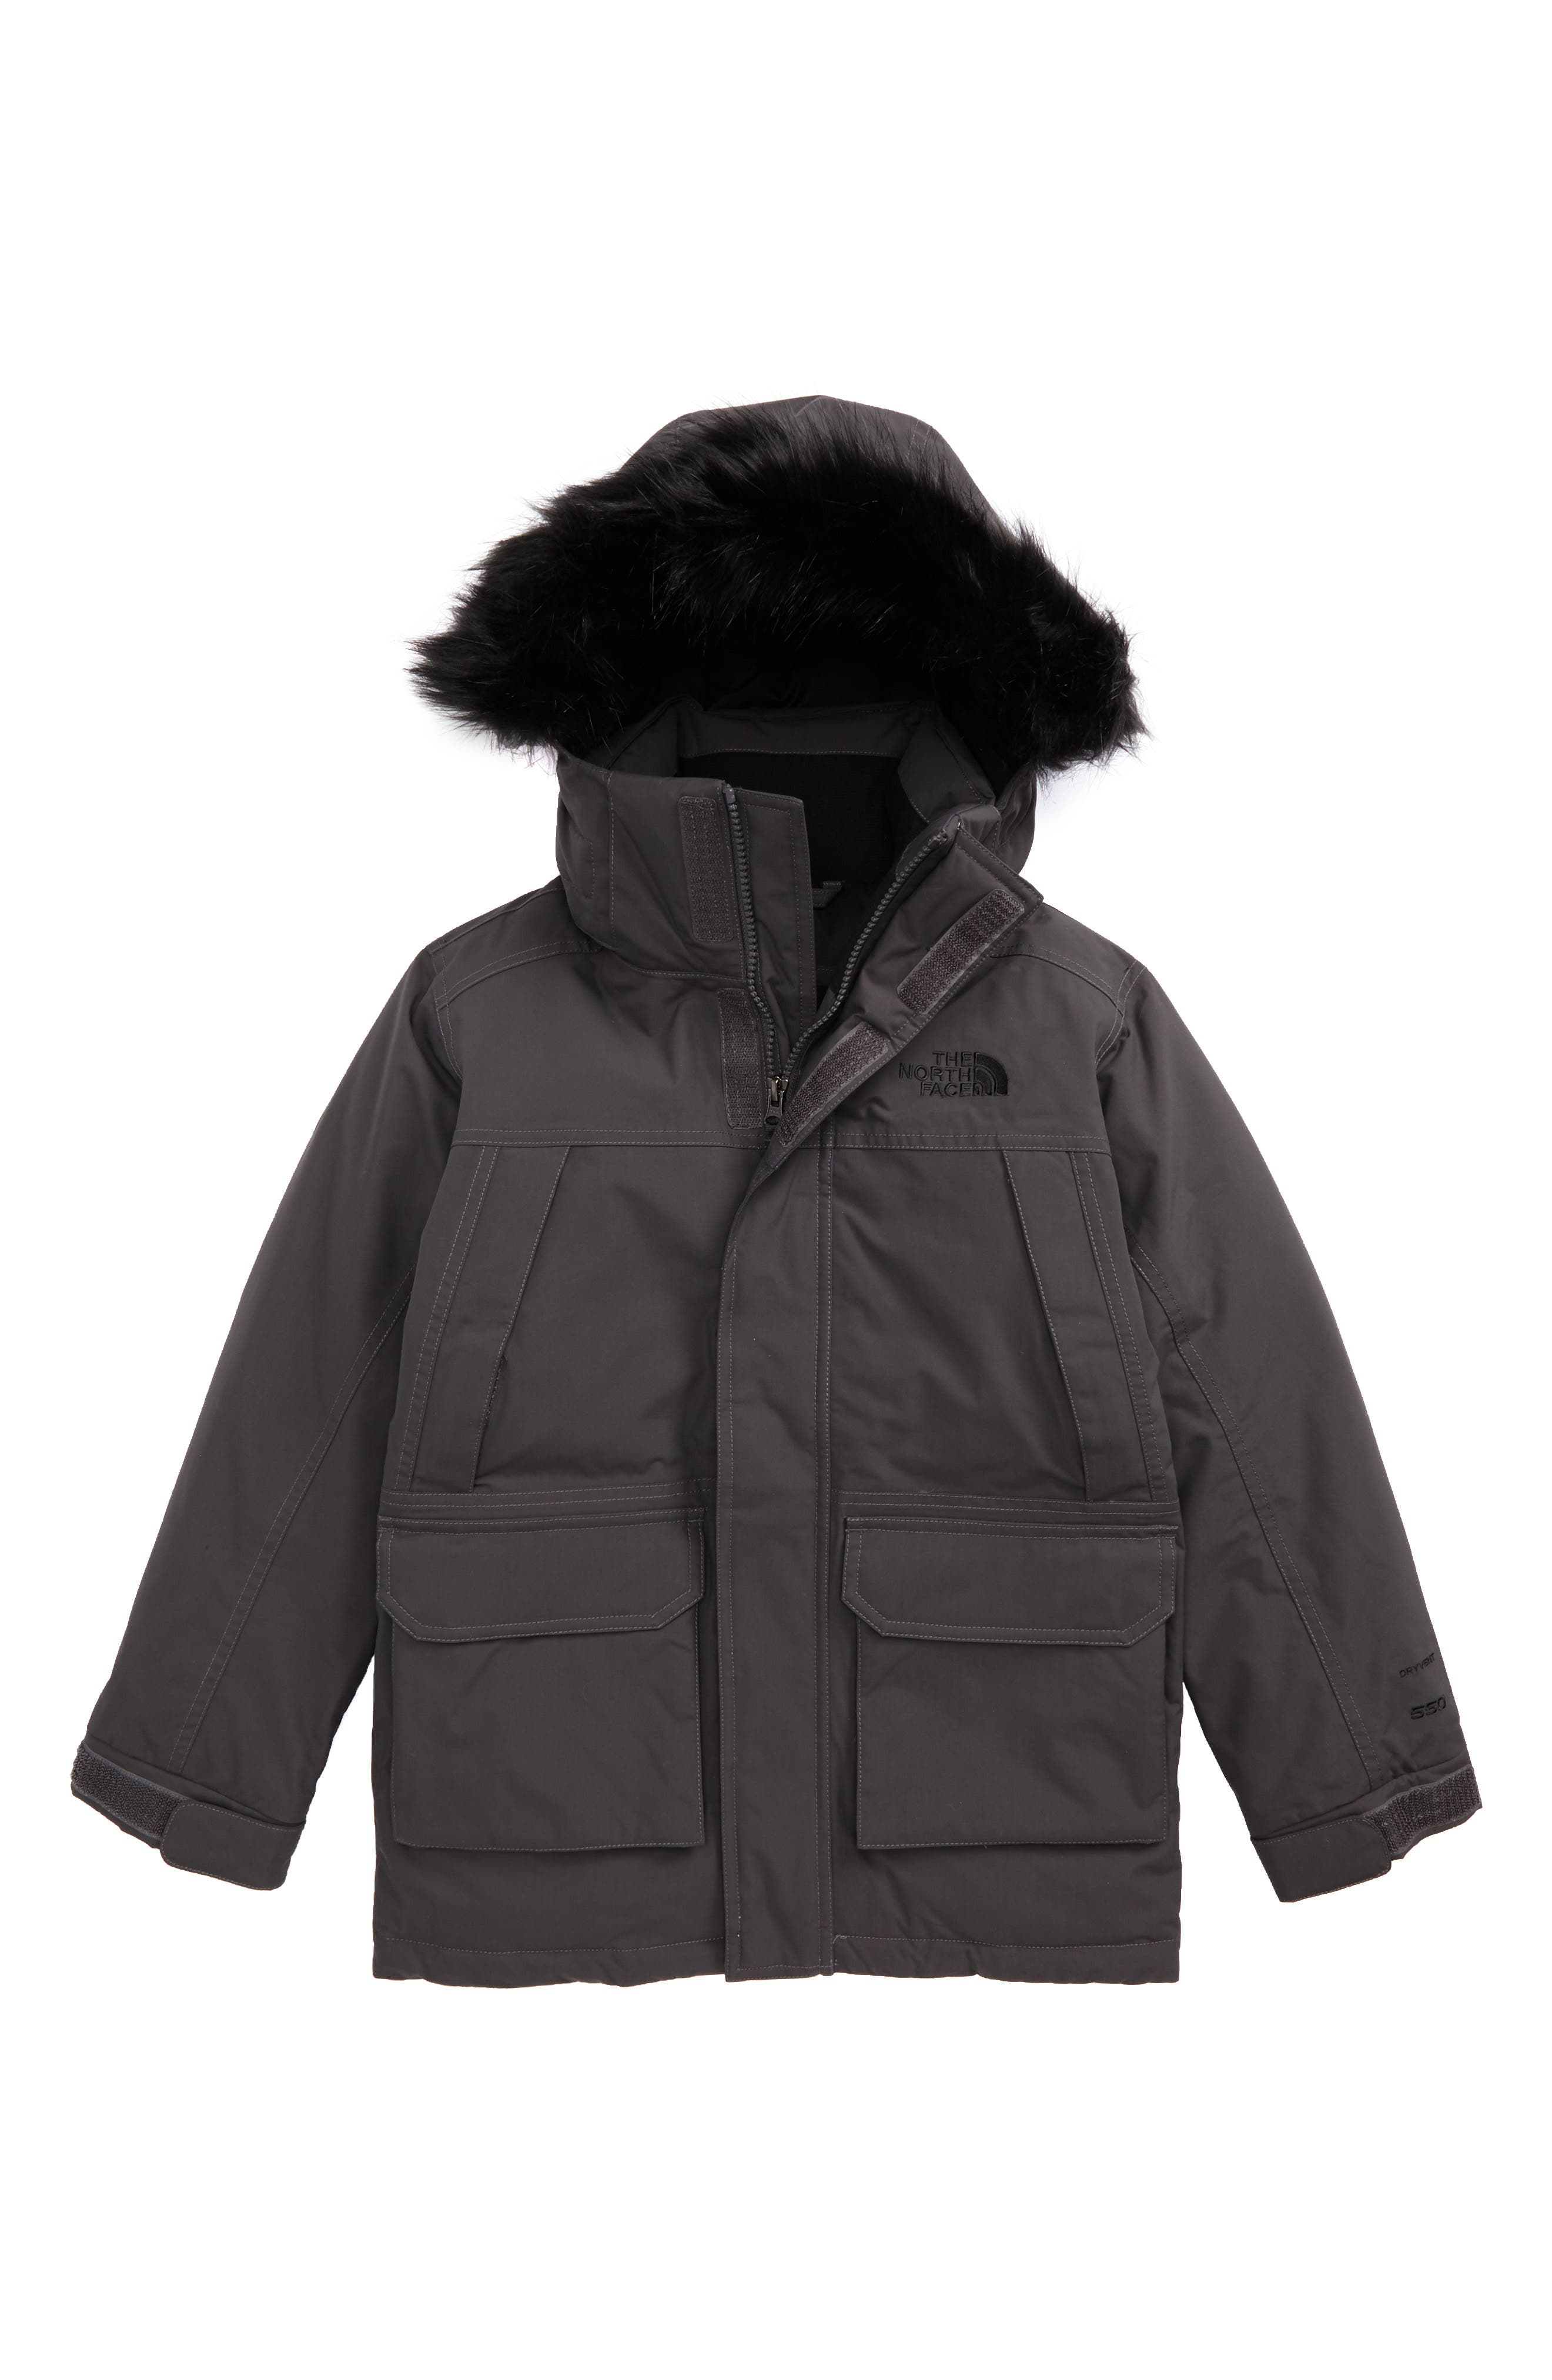 McMurdo Waterproof Down Parka with Faux Fur Trim,                         Main,                         color, Graphite Grey